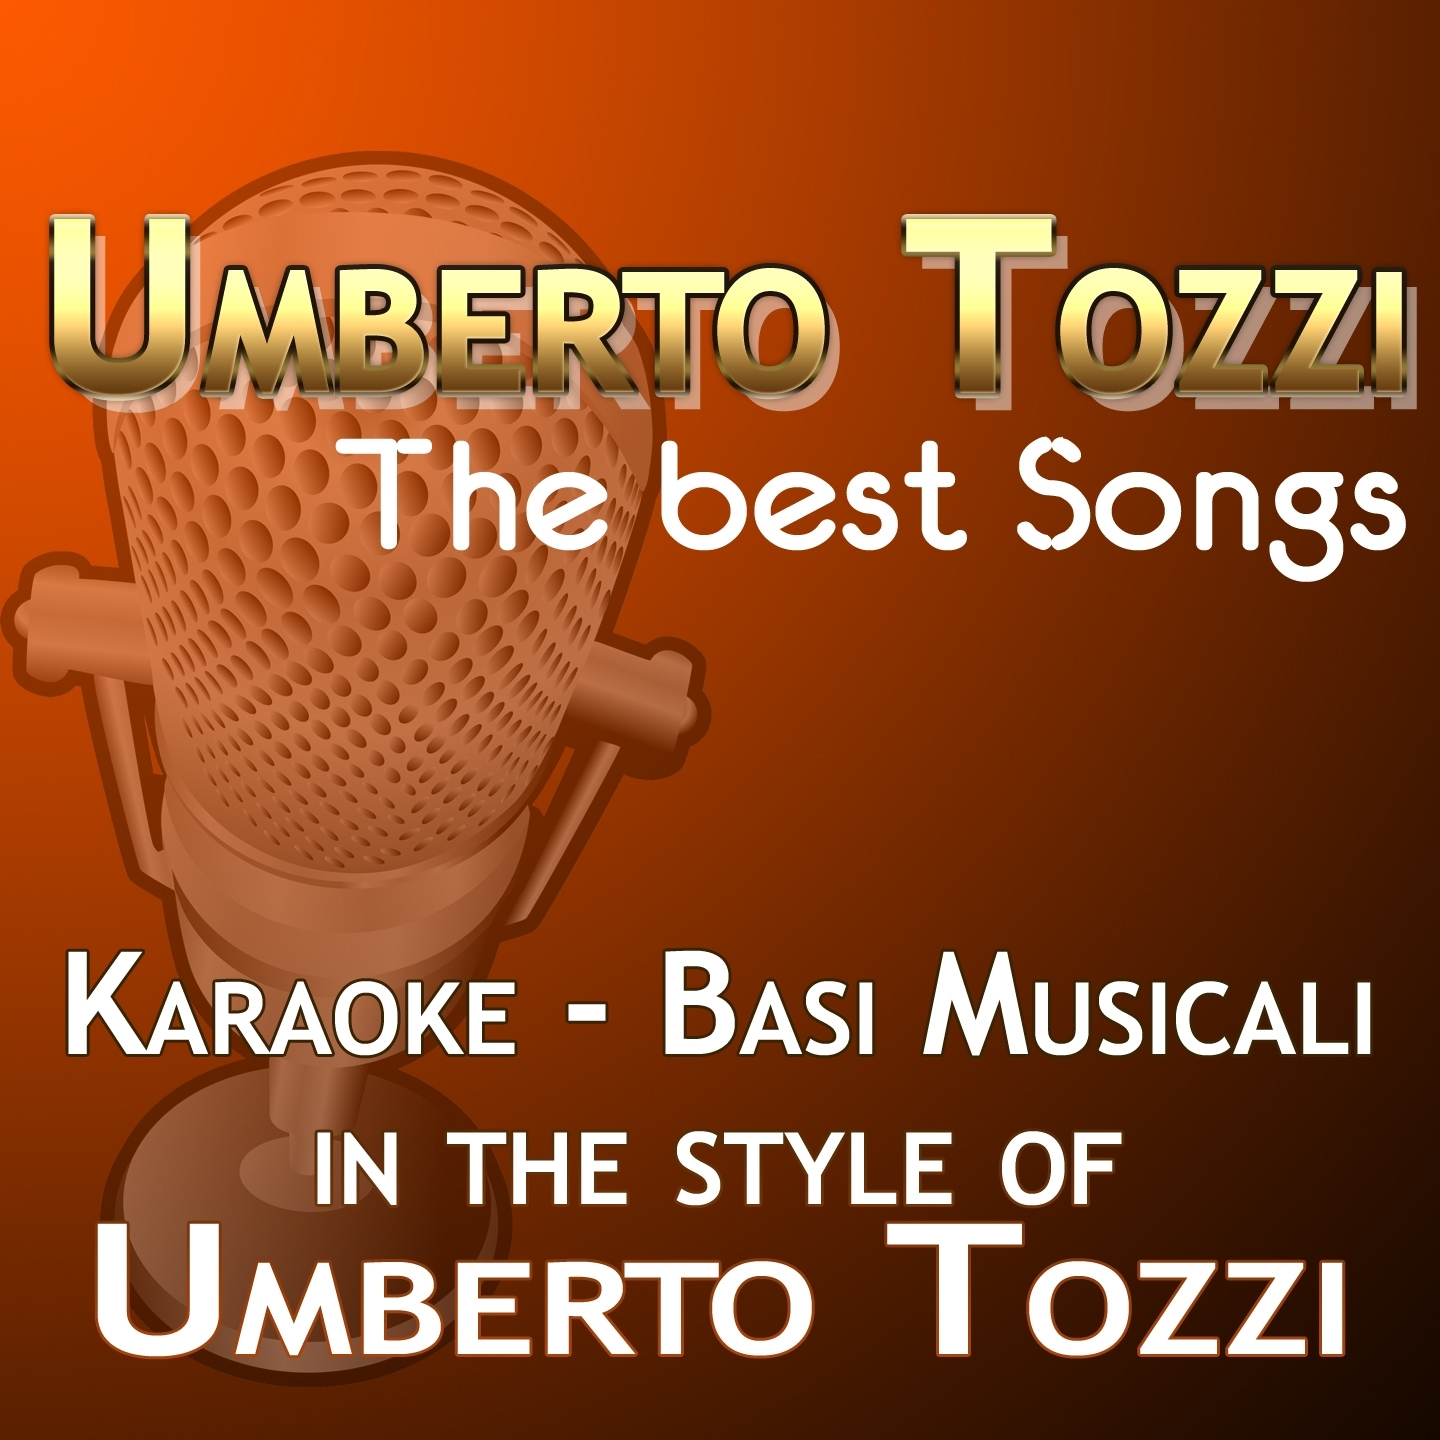 Umberto Tozzi: The Best Songs